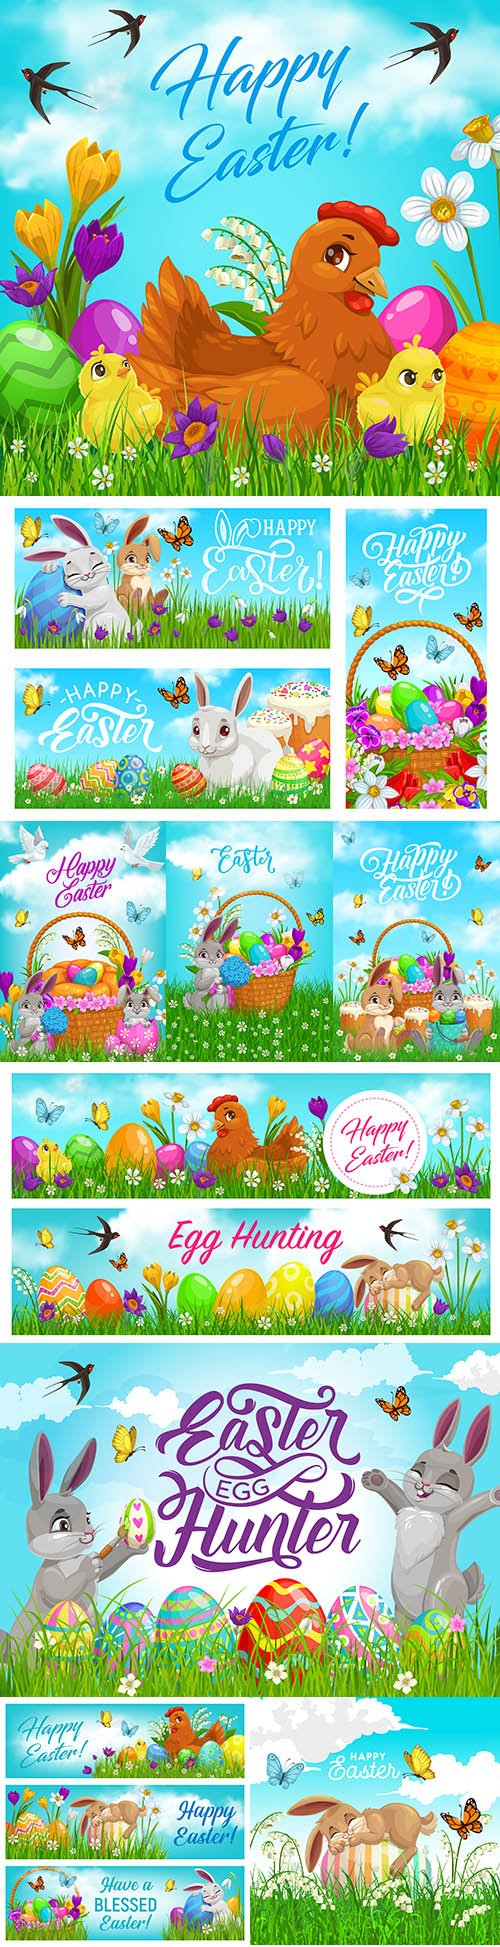 Happy Easter holiday basket for eggs and cartoon rabbits